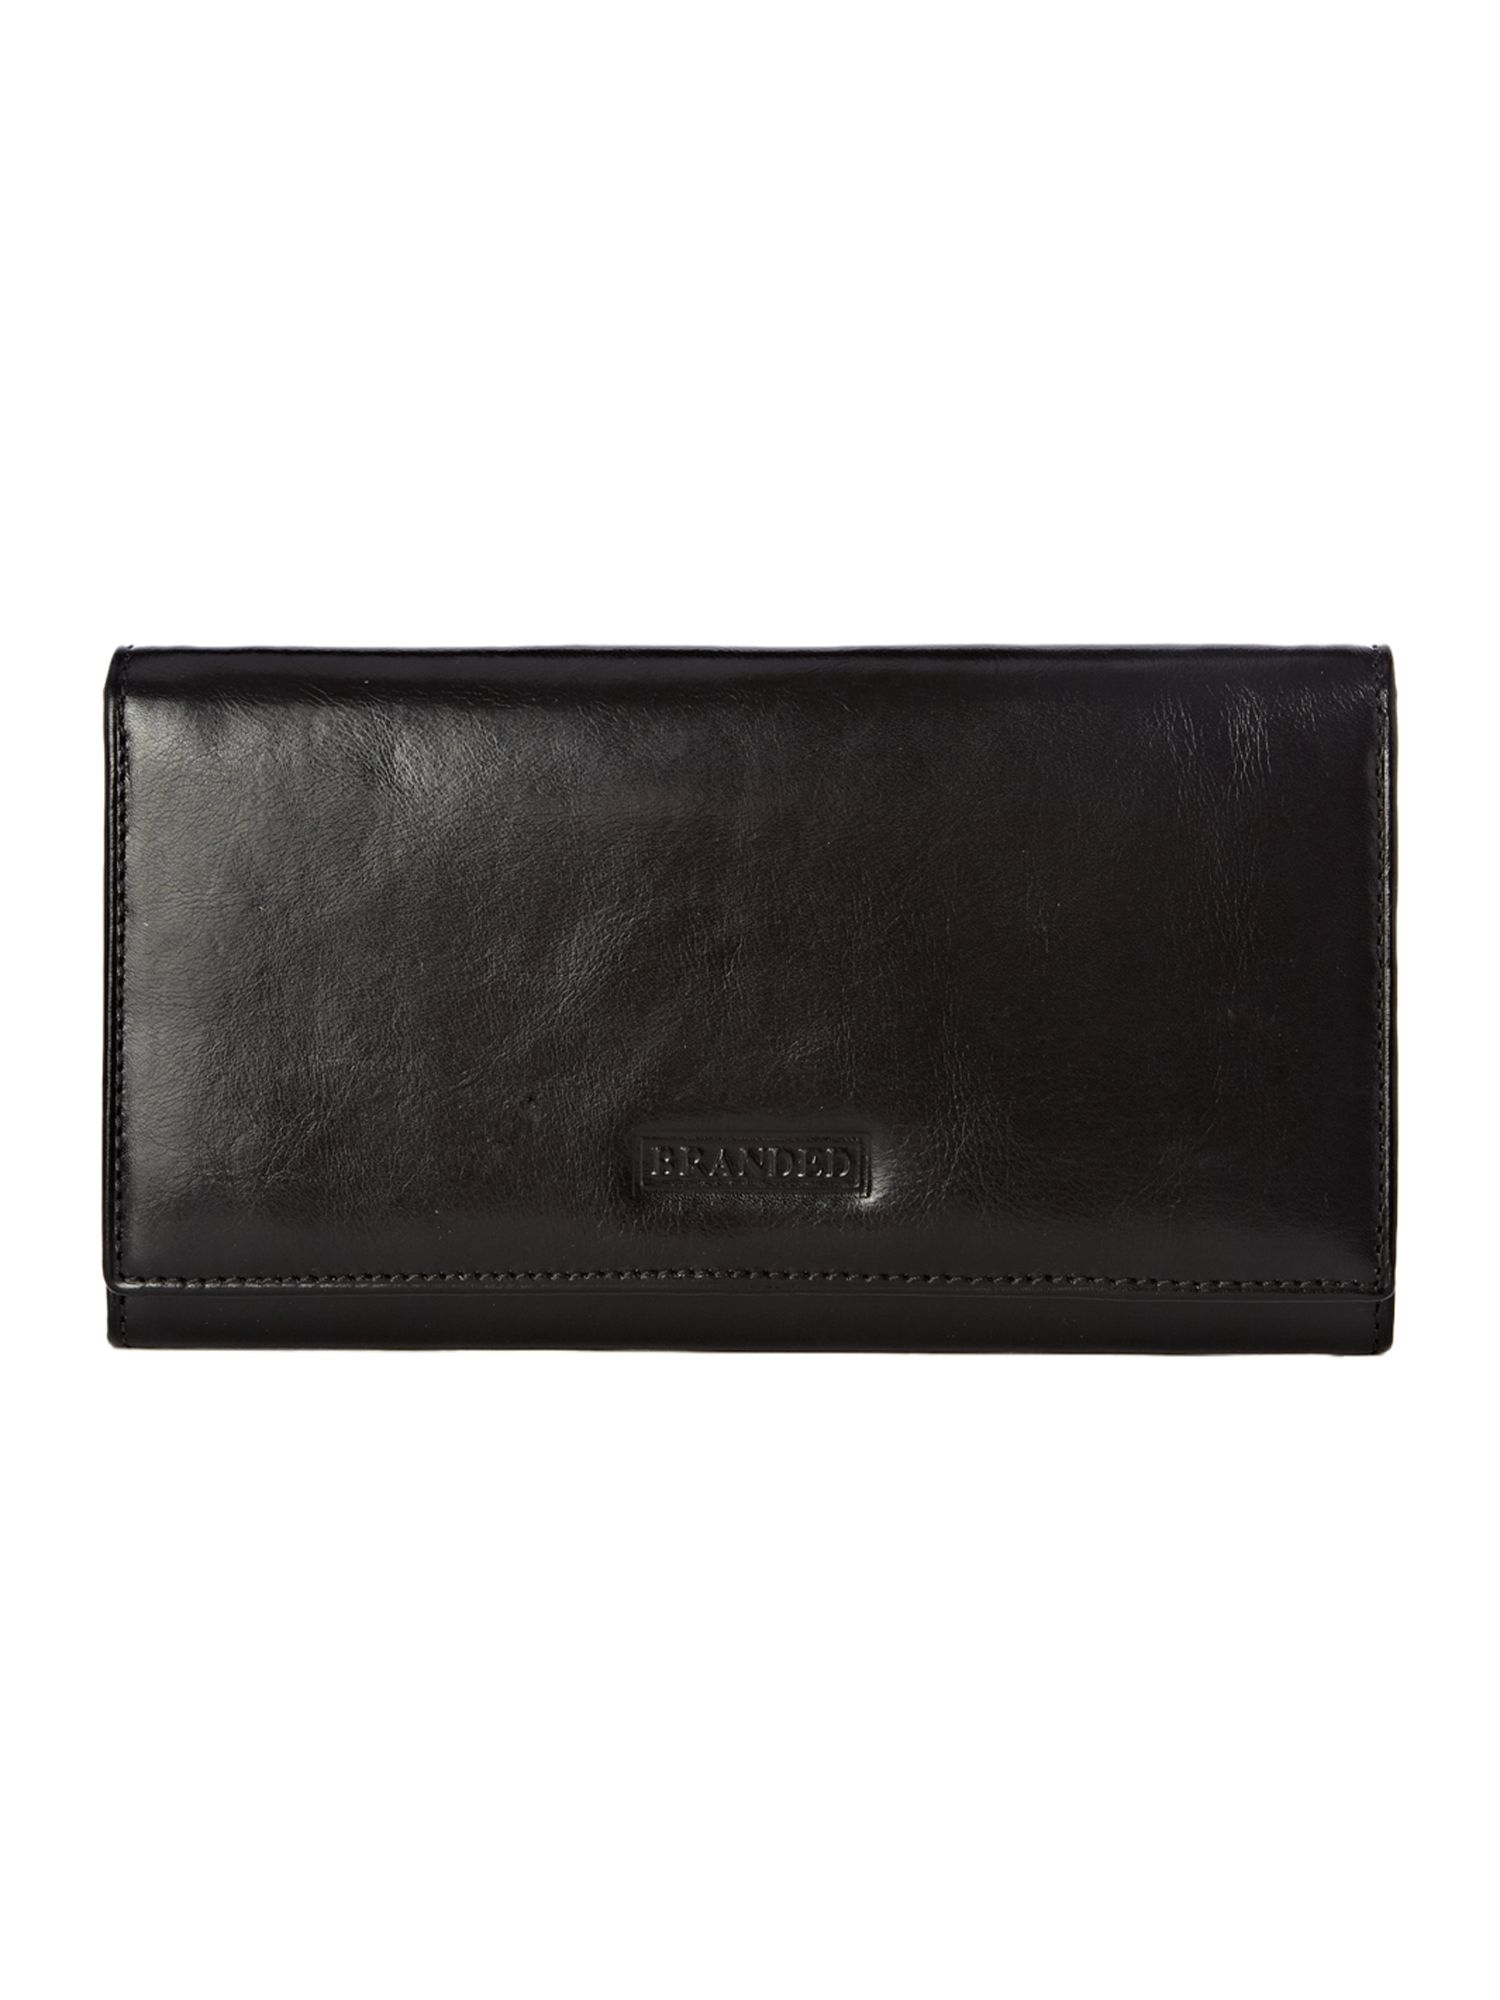 Black hardware detail flapover continental purse